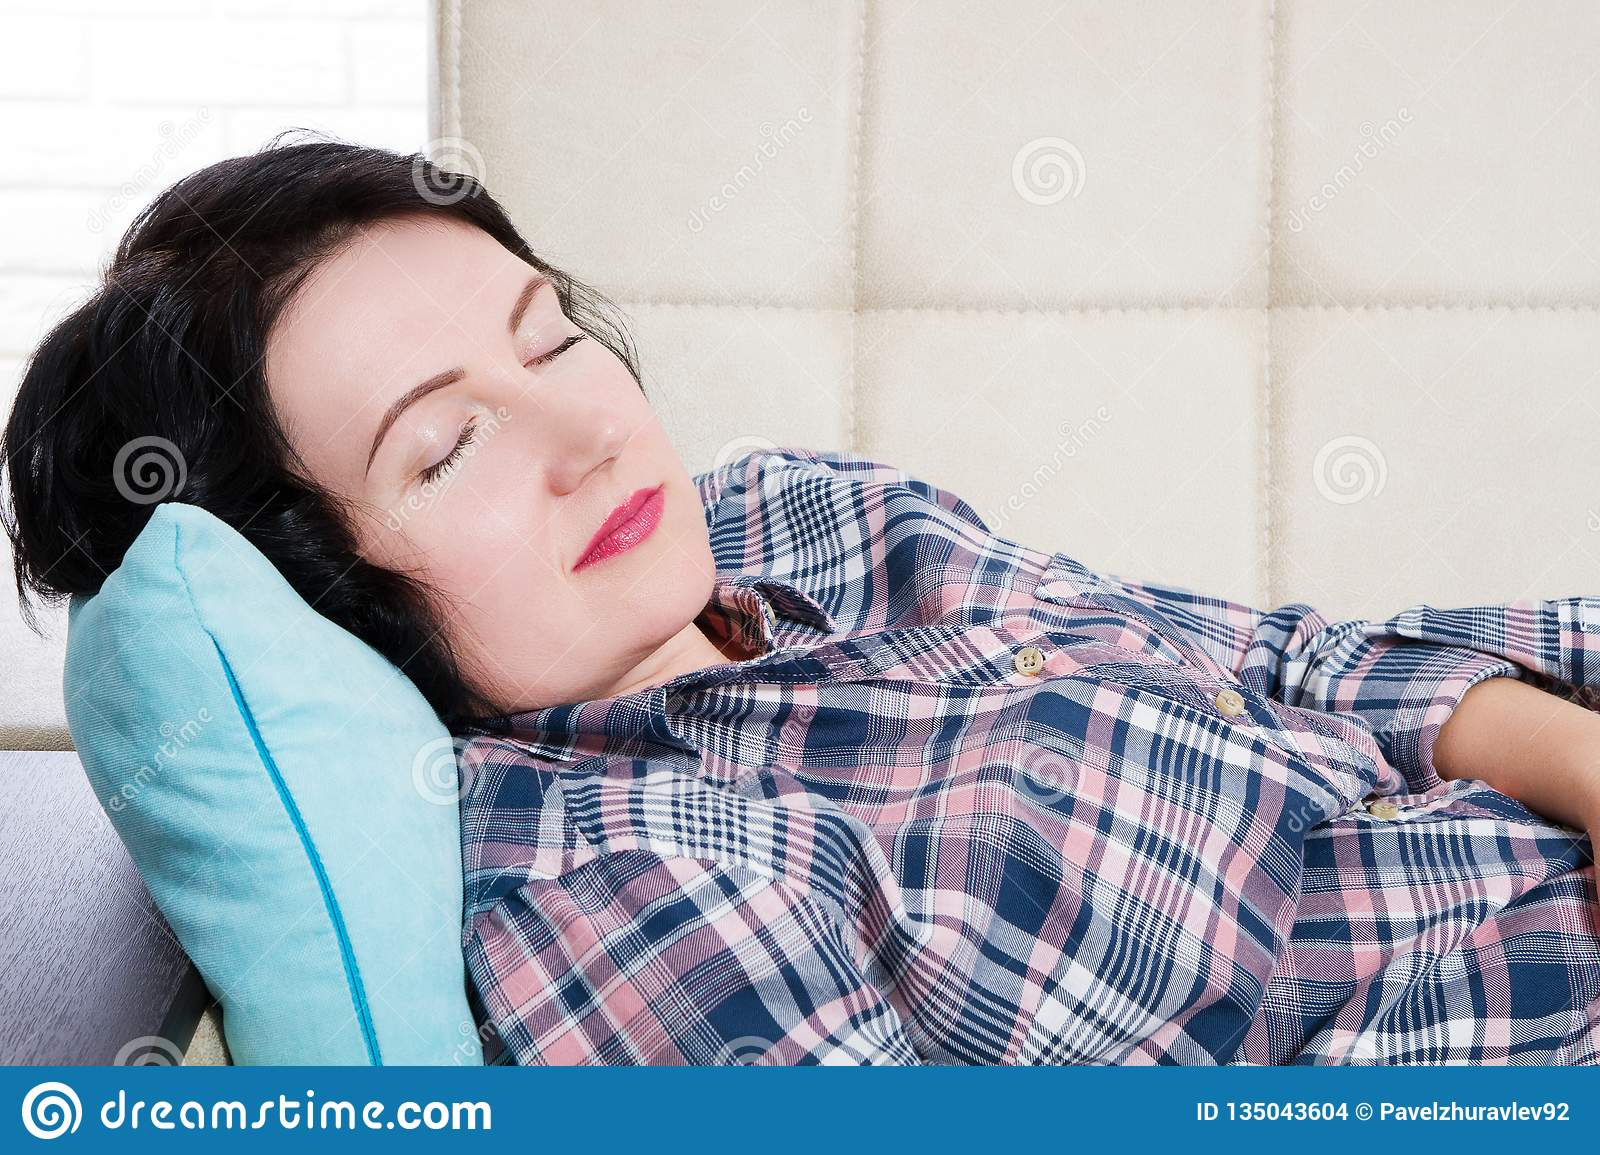 Middle aged beautiful woman lying in sofa sleeping at home after hard working day tired. Sweet dreams, good morning, new day